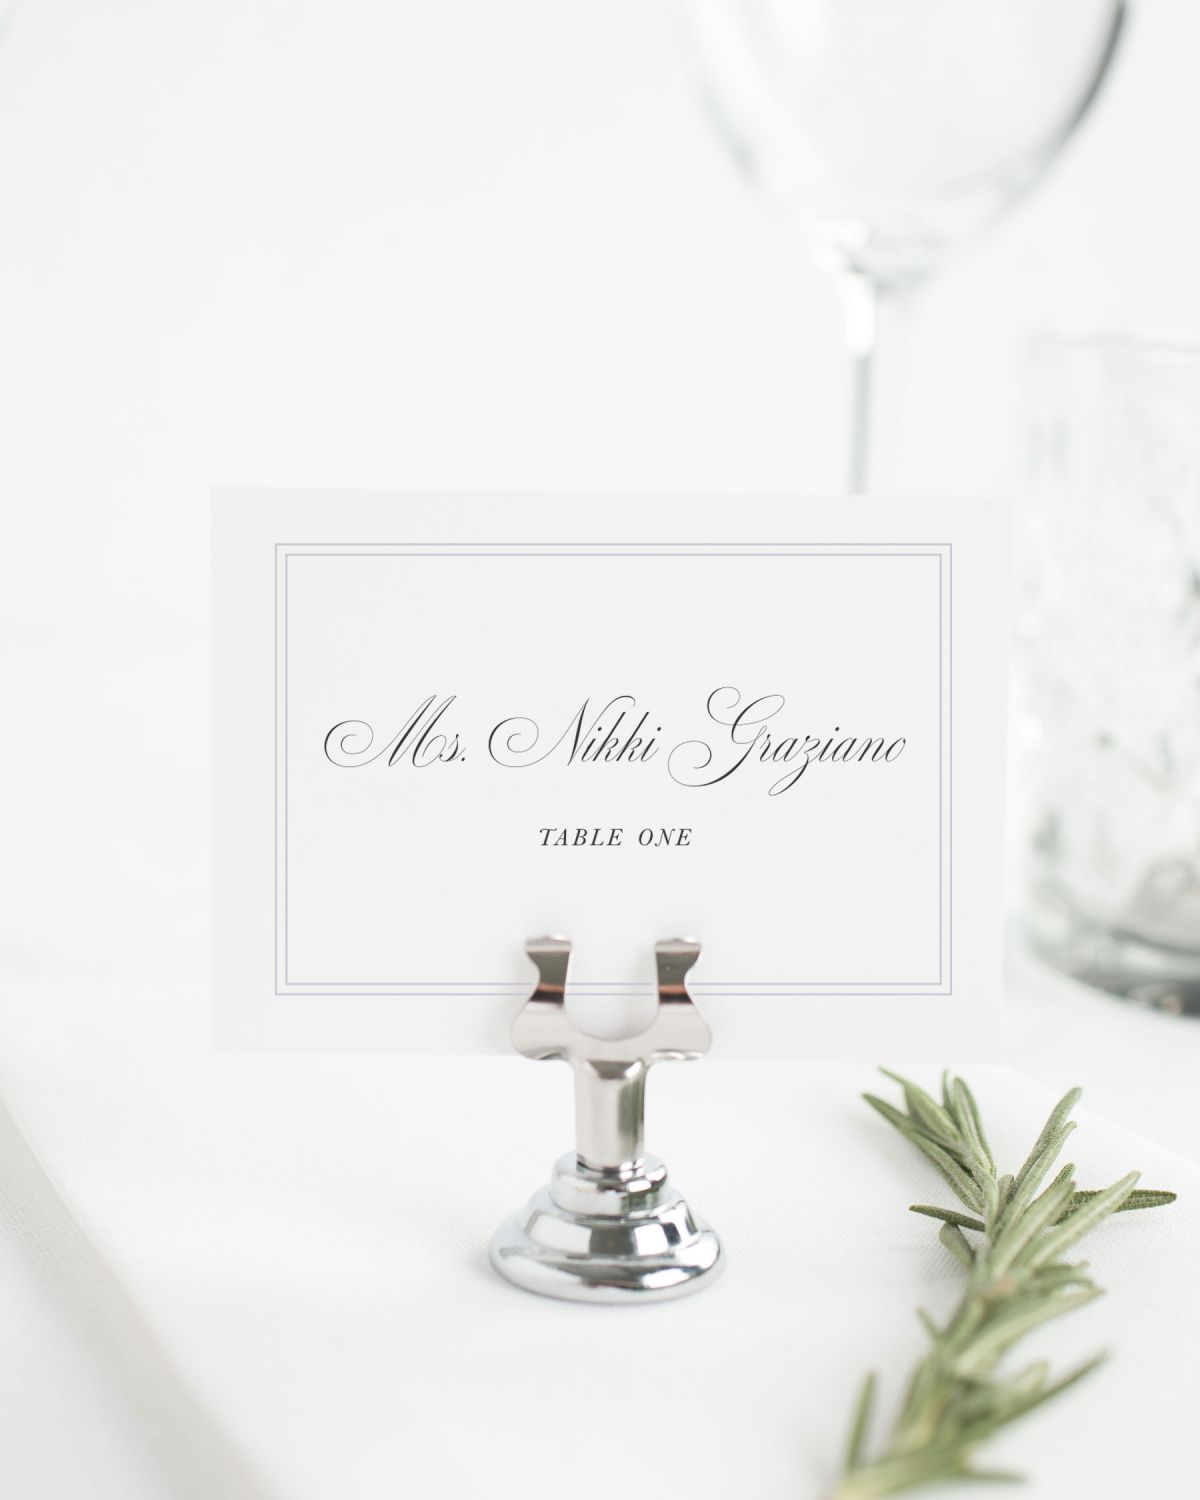 Simply Classic Place Cards - Place Cards by Shine